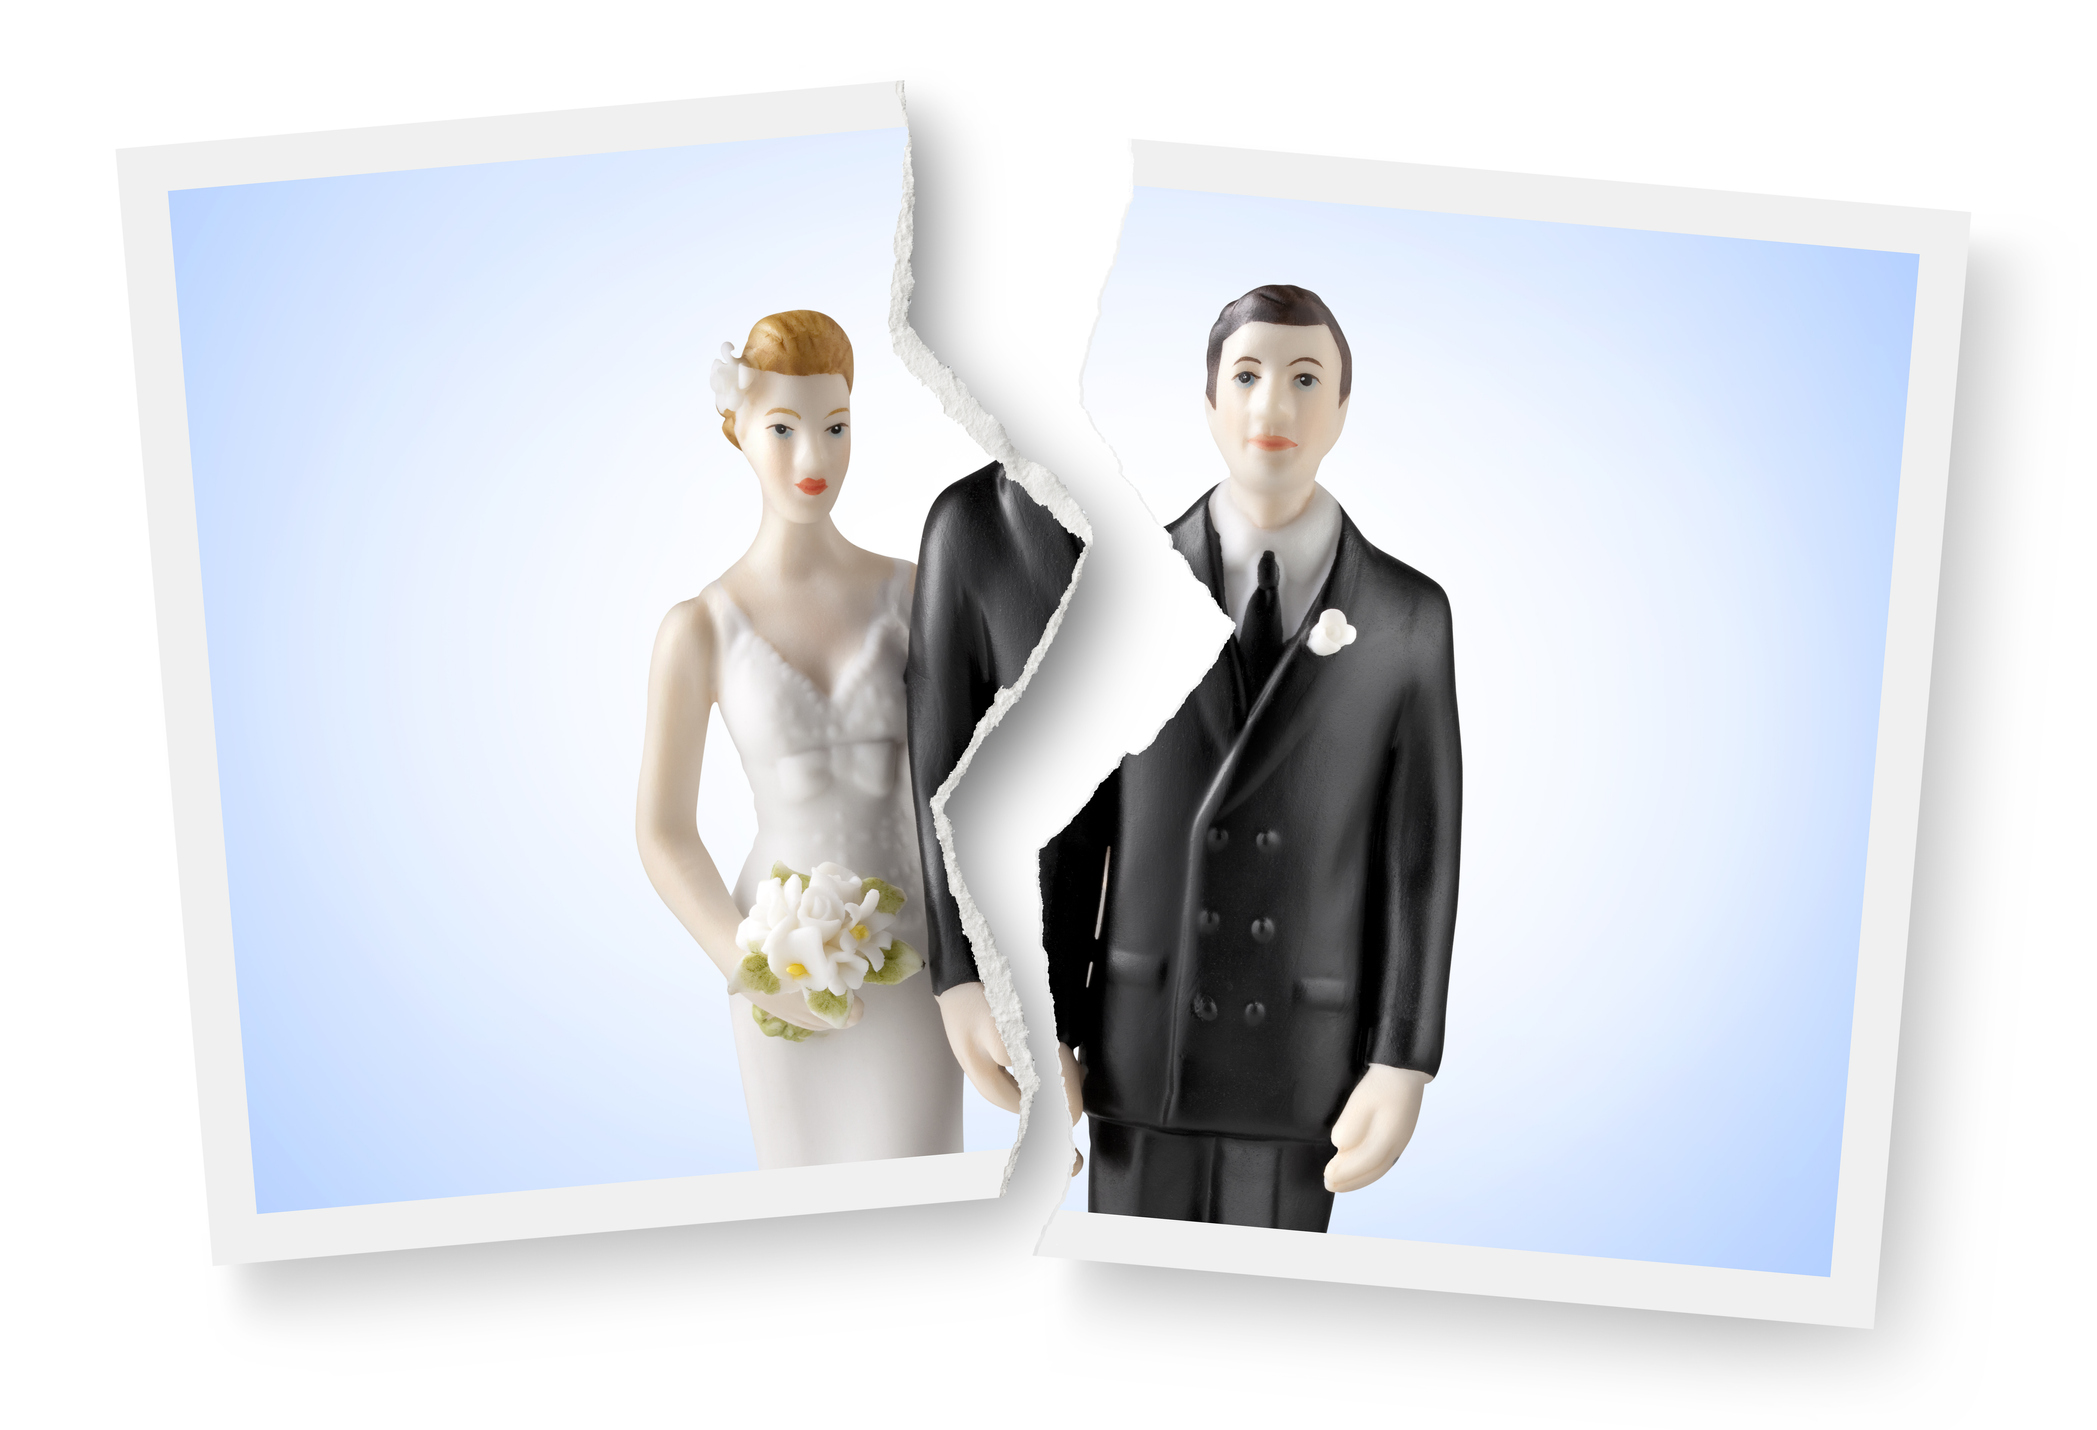 Divorces in Germany